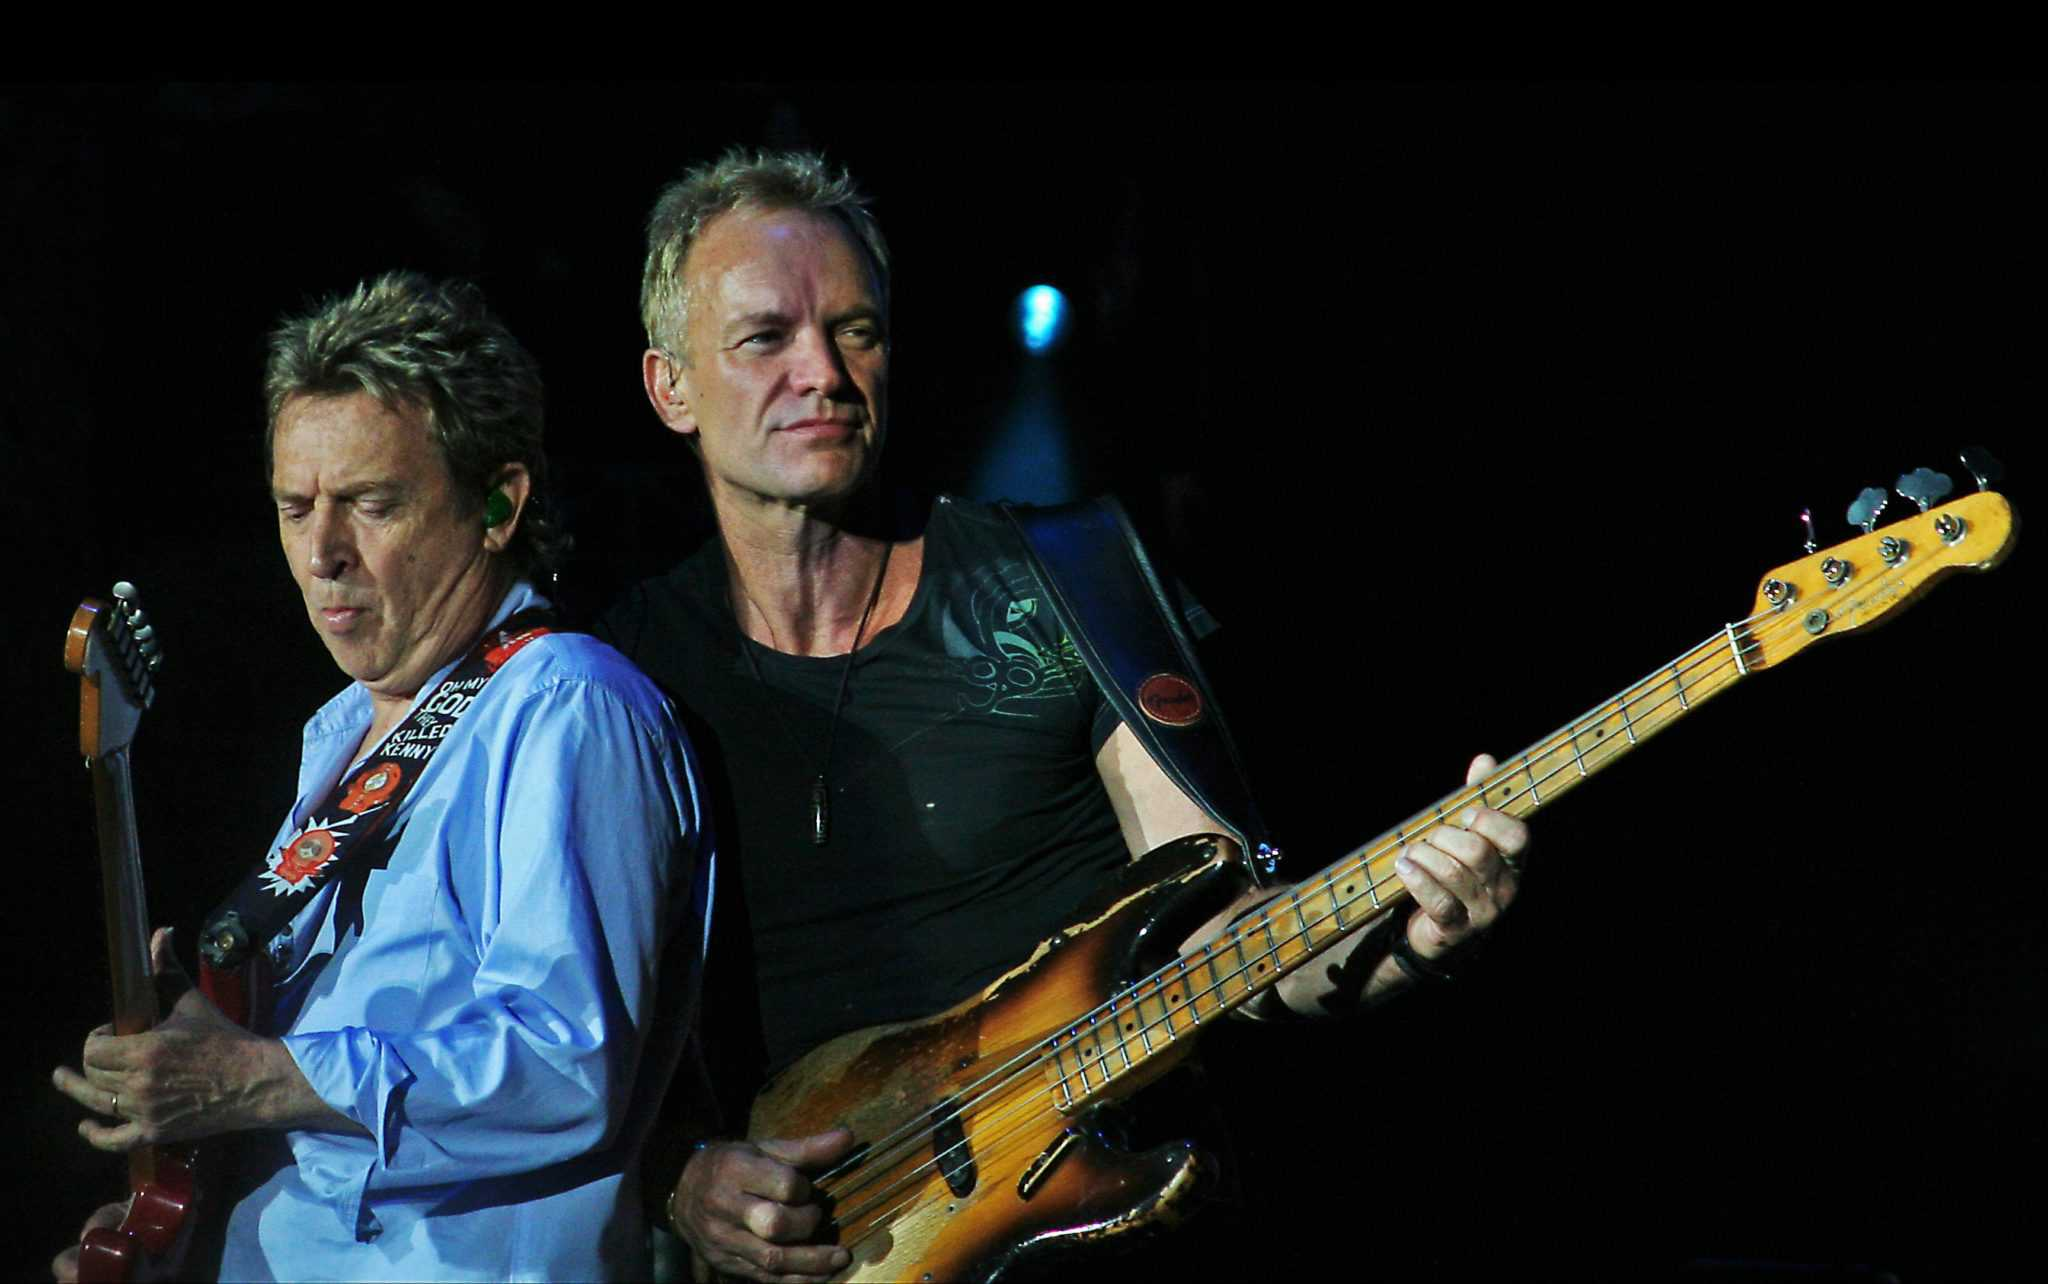 Sting and Andy Summers of The Police on their reunion tour. The band broke up when Sting and the other members could not agree on artistic direction. (Wikipedia)